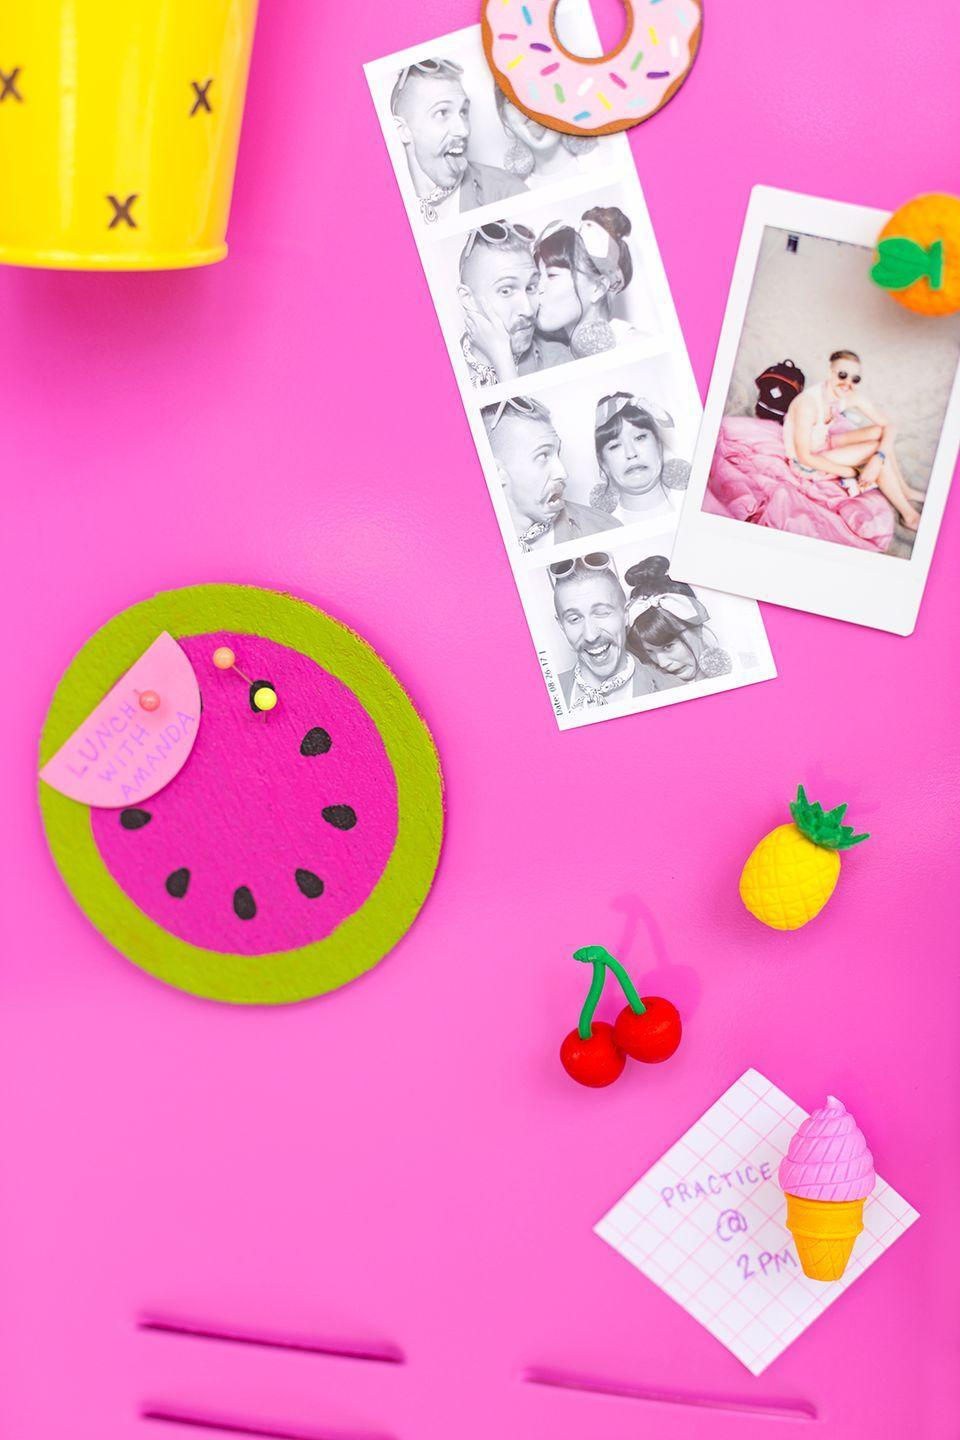 """<p>Why should we limit <a href=""""https://www.goodhousekeeping.com/food-recipes/a27198230/how-to-cut-a-watermelon/"""" rel=""""nofollow noopener"""" target=""""_blank"""" data-ylk=""""slk:watermelon"""" class=""""link rapid-noclick-resp"""">watermelon</a> to only one season? Exactly. Now, she'll actually like sitting at her desk.</p><p><em><a href=""""http://www.awwsam.com/2017/08/diy-locker-decoration-ideas.html"""" rel=""""nofollow noopener"""" target=""""_blank"""" data-ylk=""""slk:Get the tutorial at Aww Sam »"""" class=""""link rapid-noclick-resp"""">Get the tutorial at Aww Sam »</a></em> </p>"""